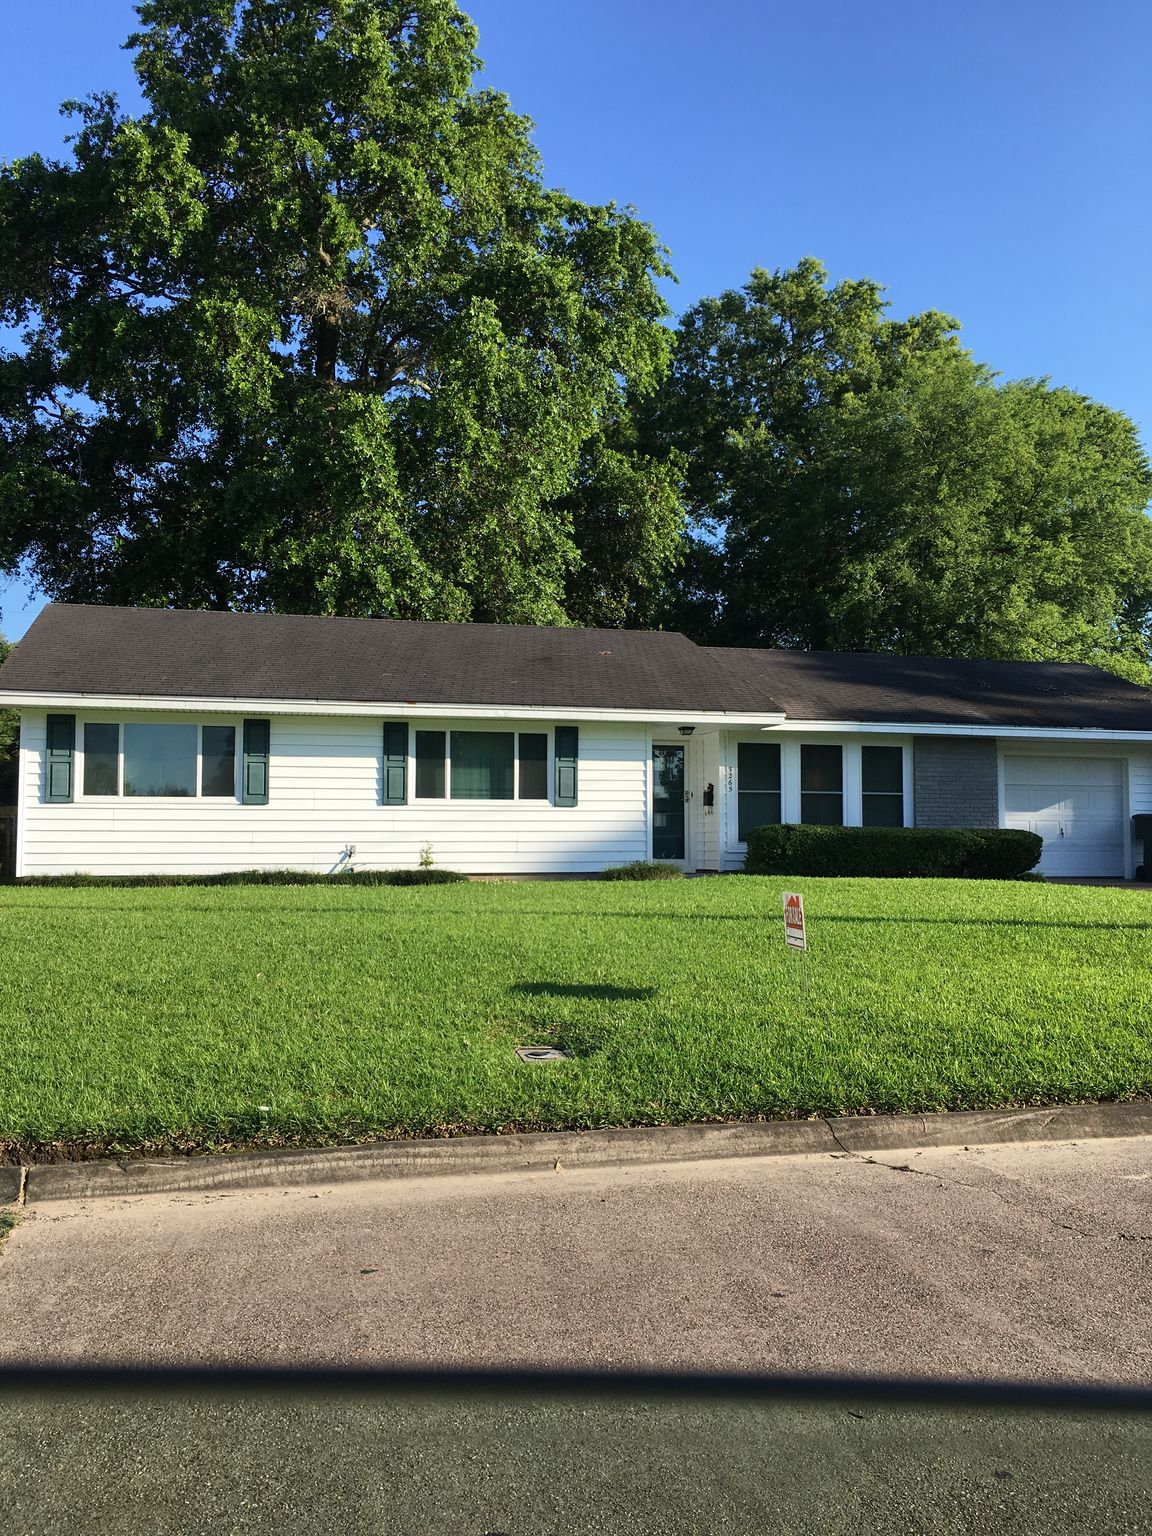 5265 Laurel St Beaumont Tx 77707 3 Bed 2 Bath Single Family